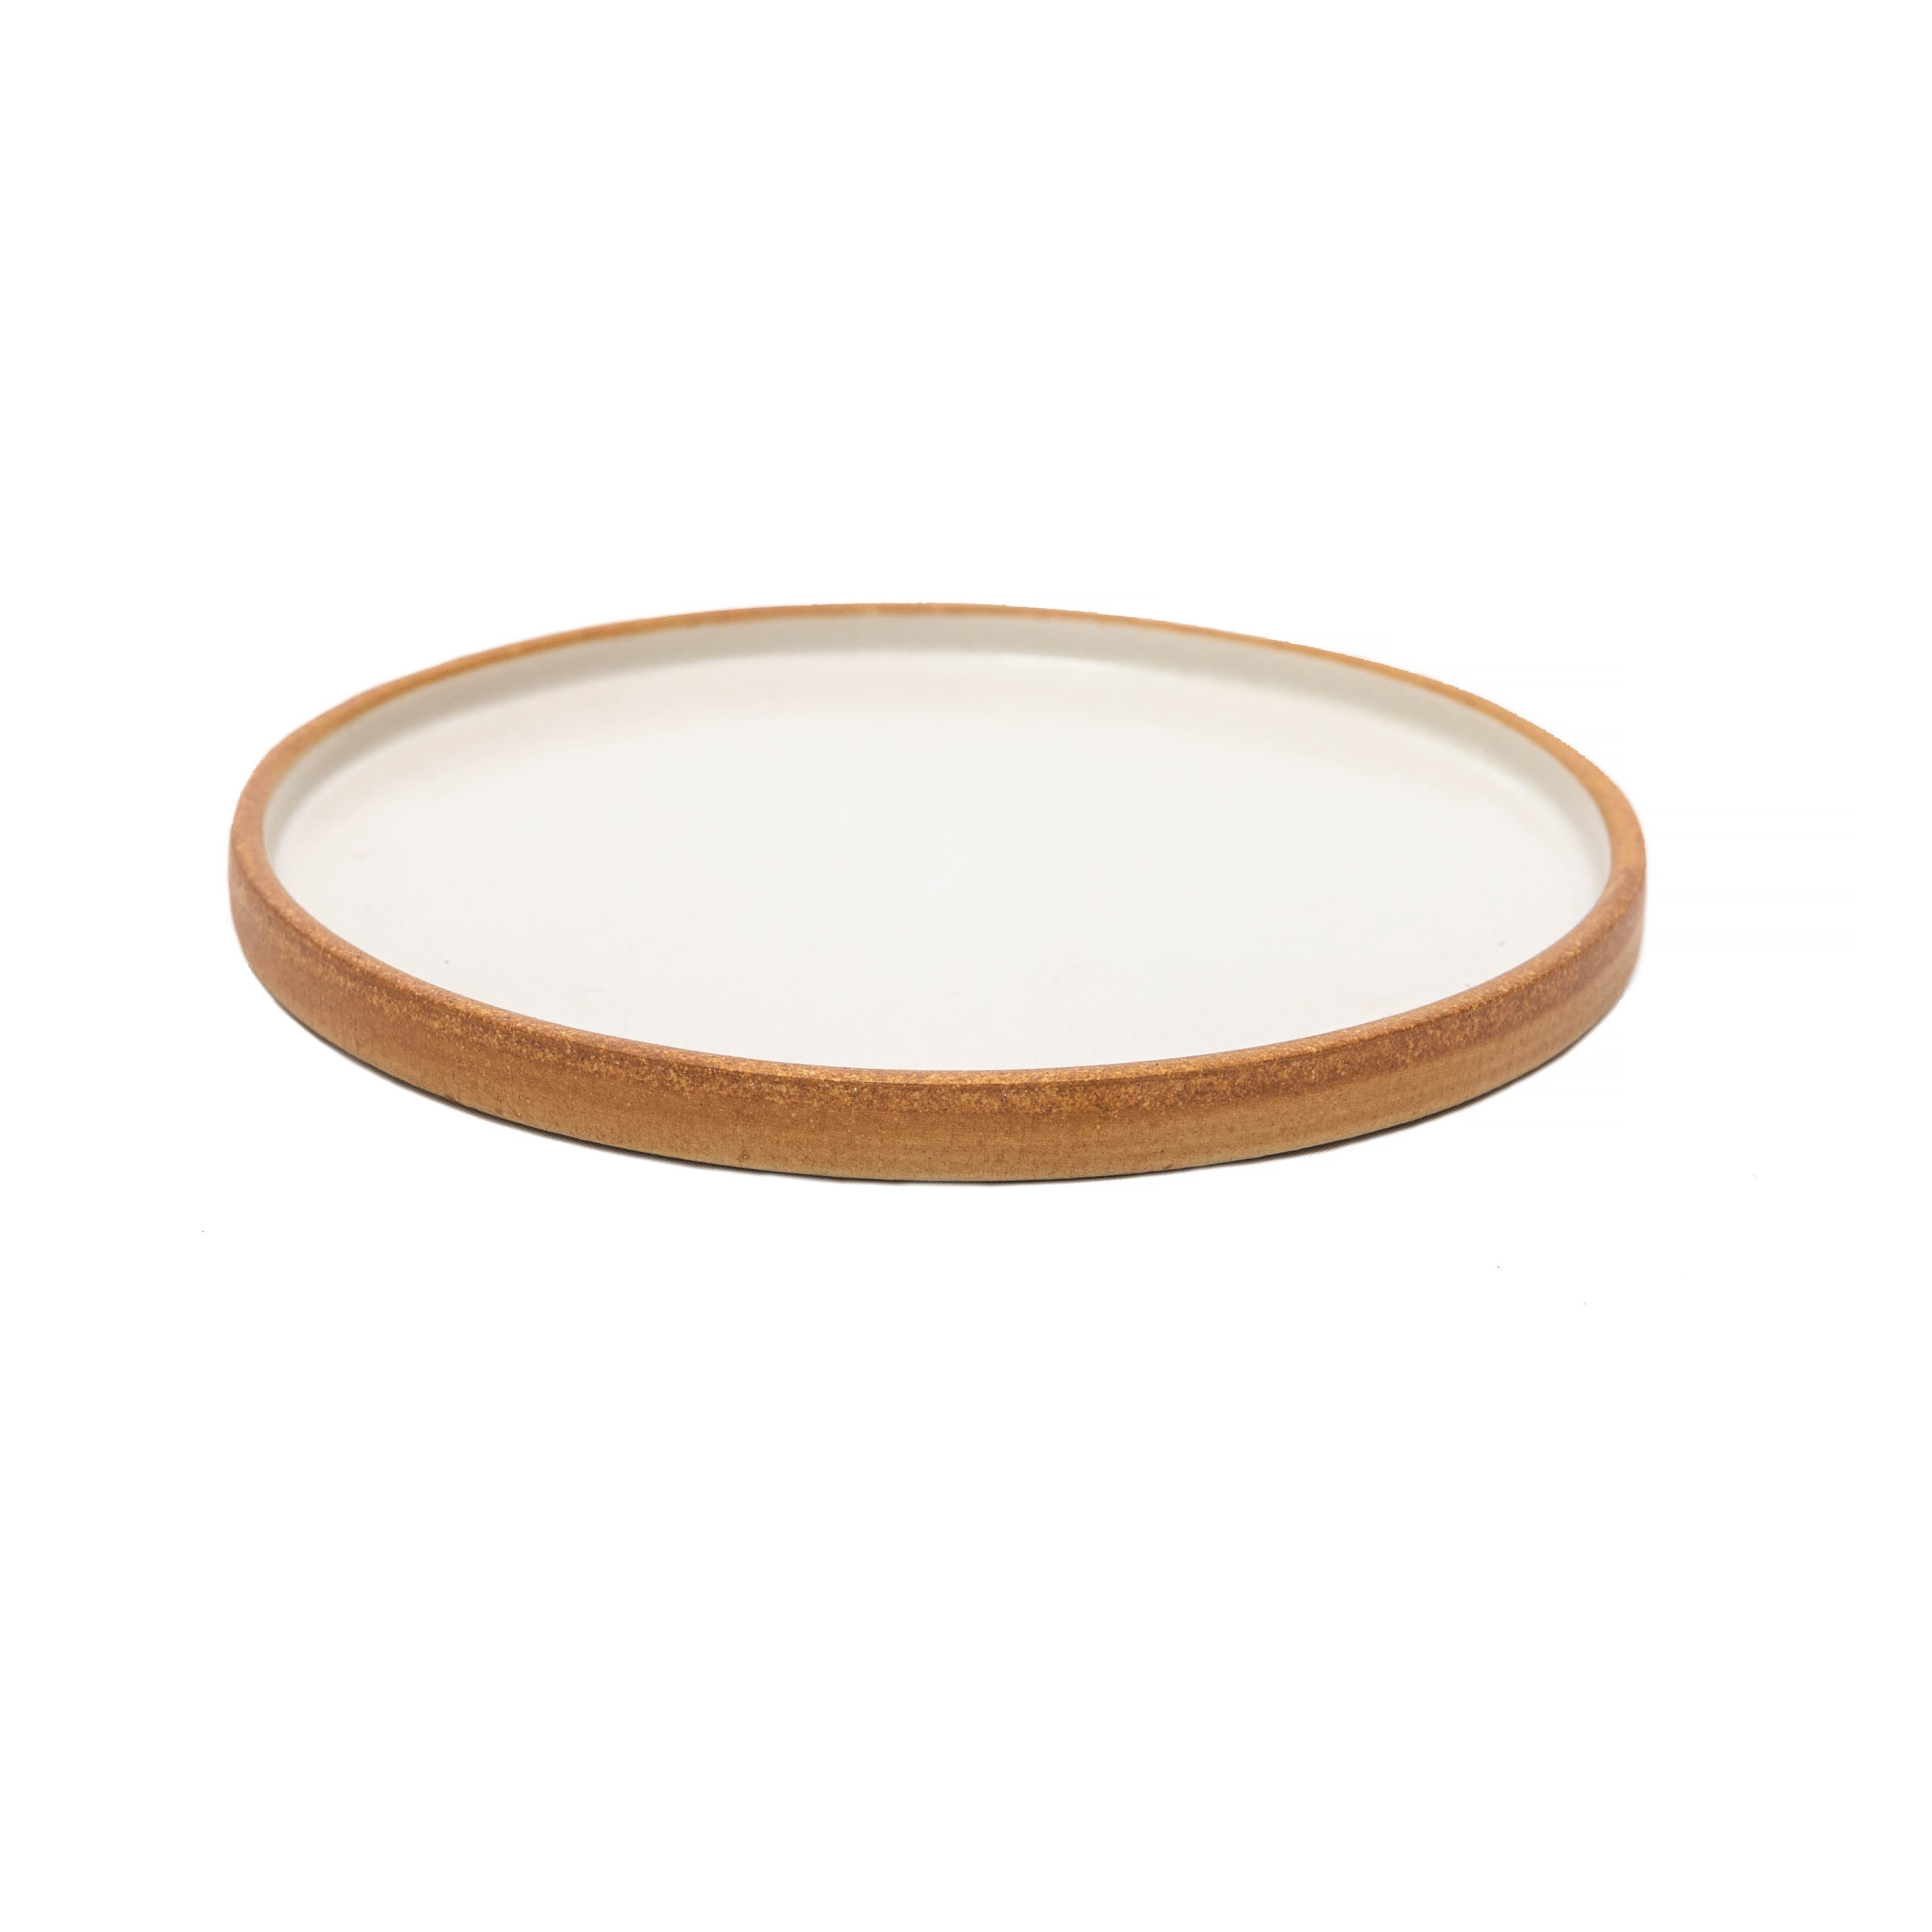 Matte White With Rye Edge Starter/Side Plate Flat Round 21cm Dia